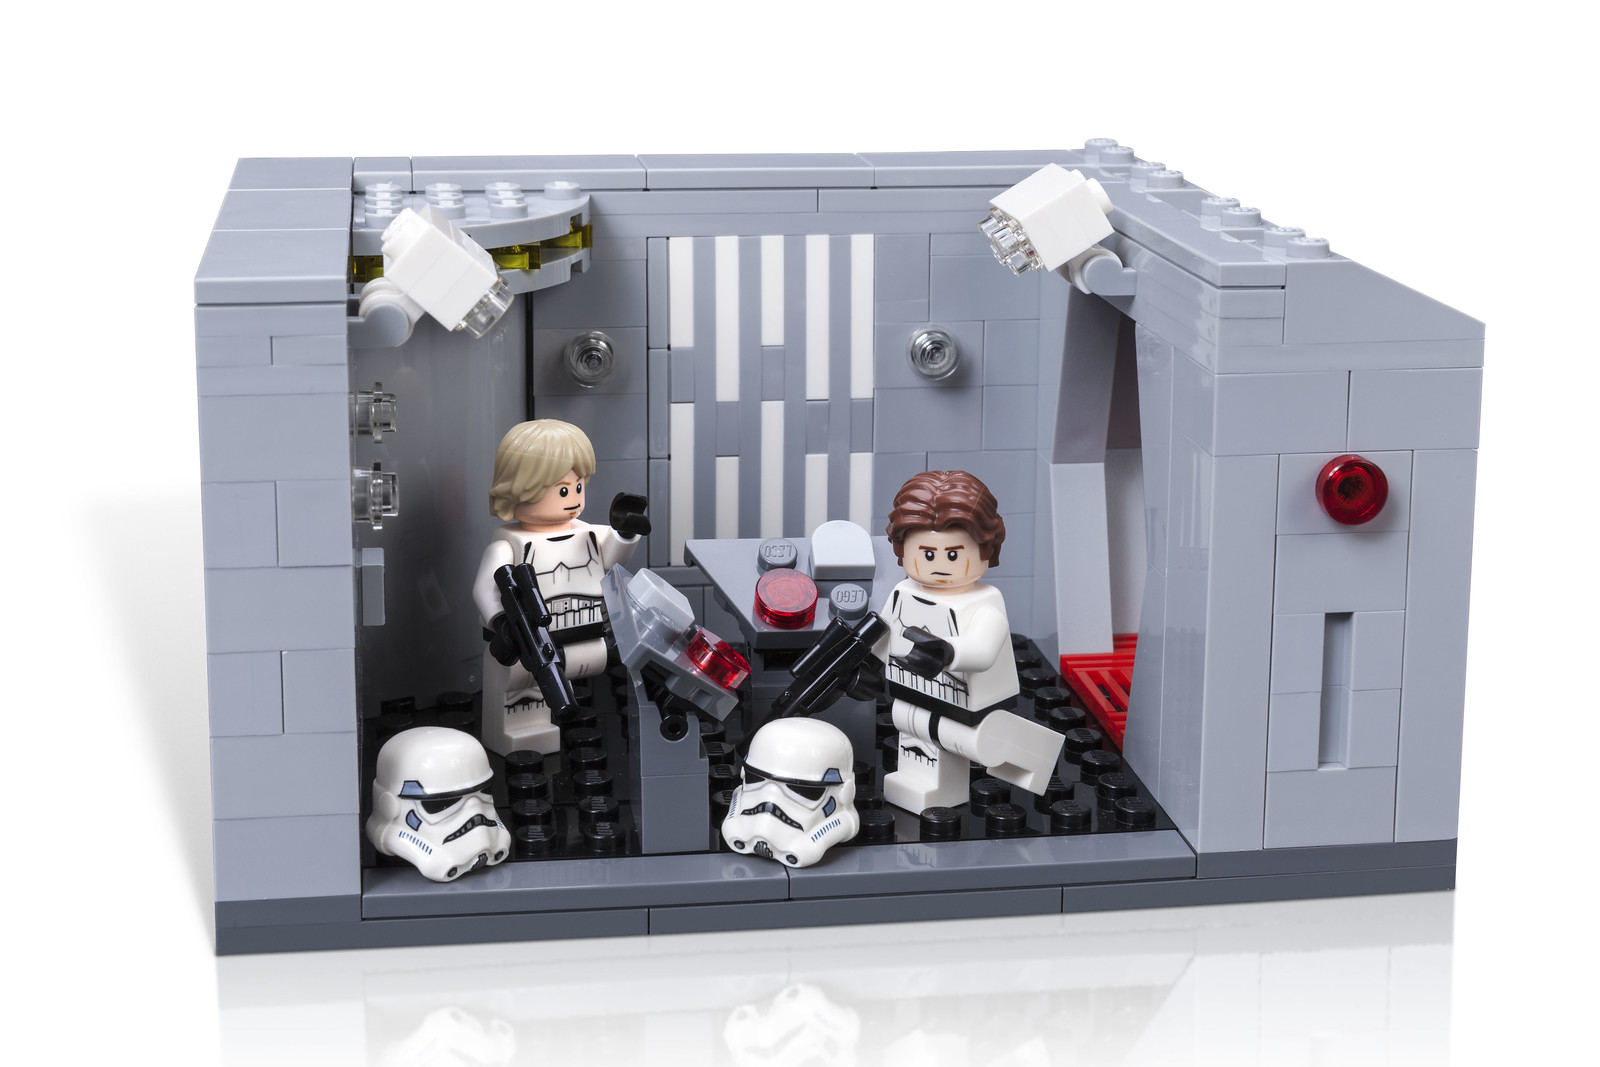 LEGO Star Wars Detention Block Rescue - Star Wars Celebration 2017 exclusive